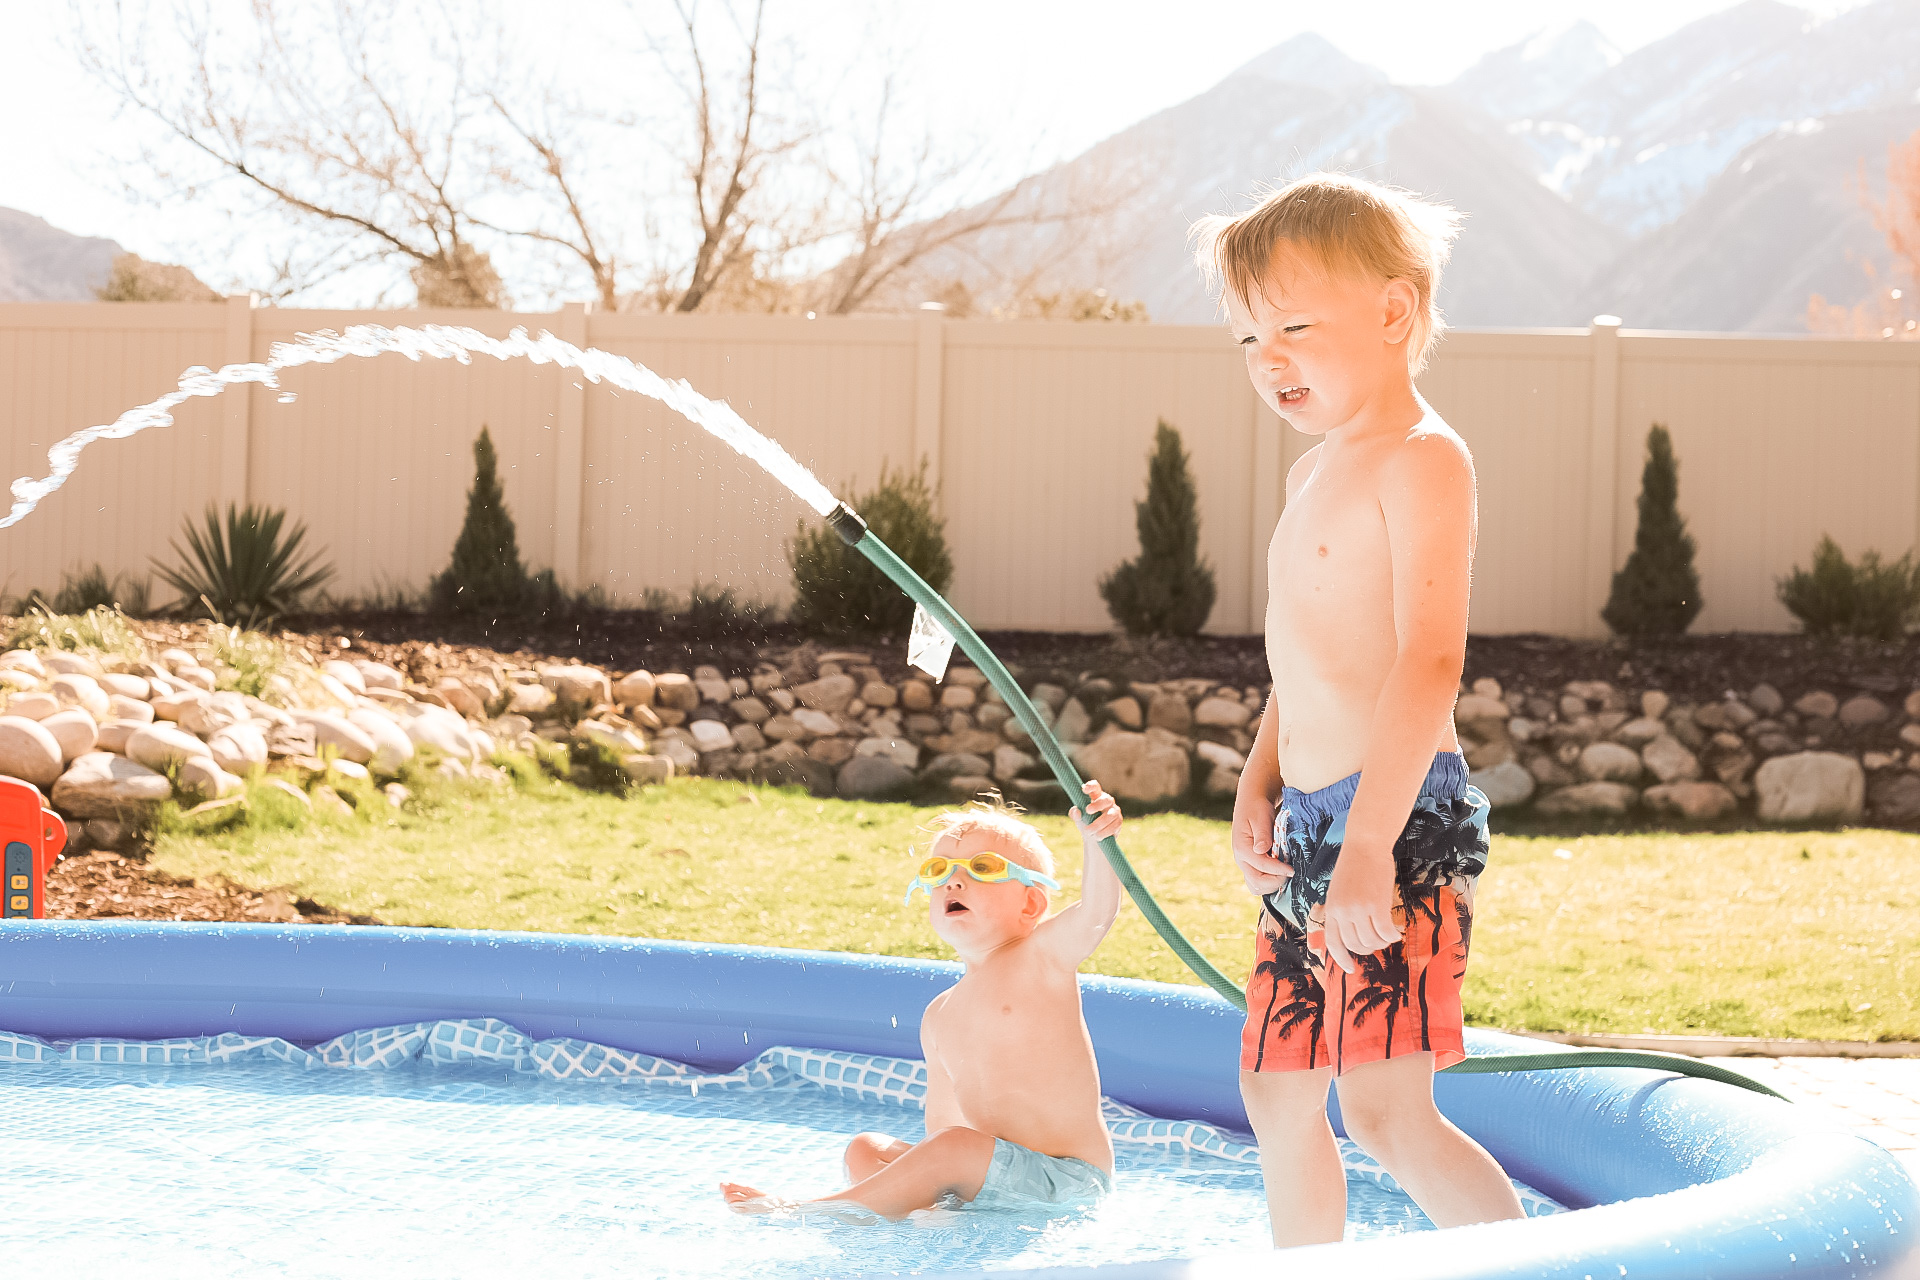 Pandemic Quarantine Family Pool Party Backyard Activities And Ideas